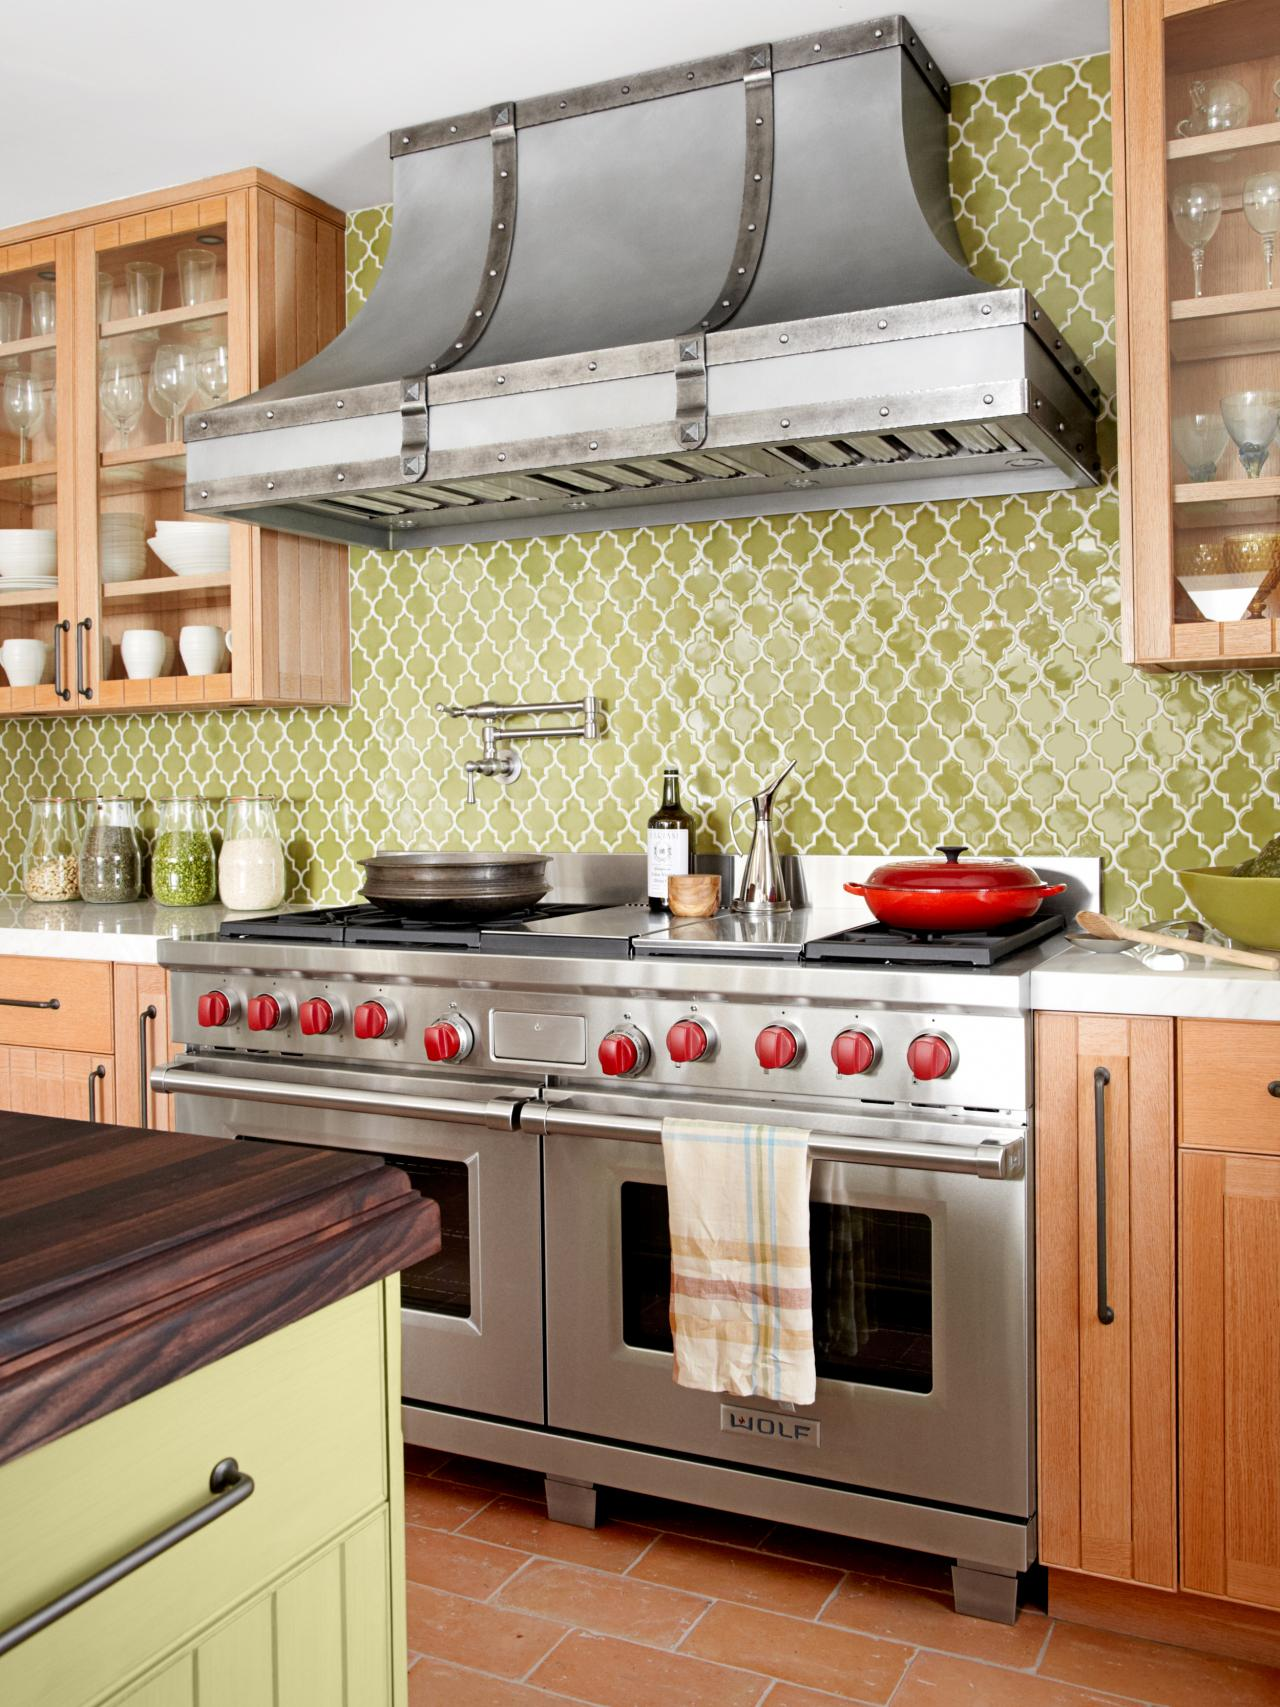 Uncategorized Kitchen Backsplash Colors 50 best kitchen backsplash ideas for 2017 2 dreaming of green